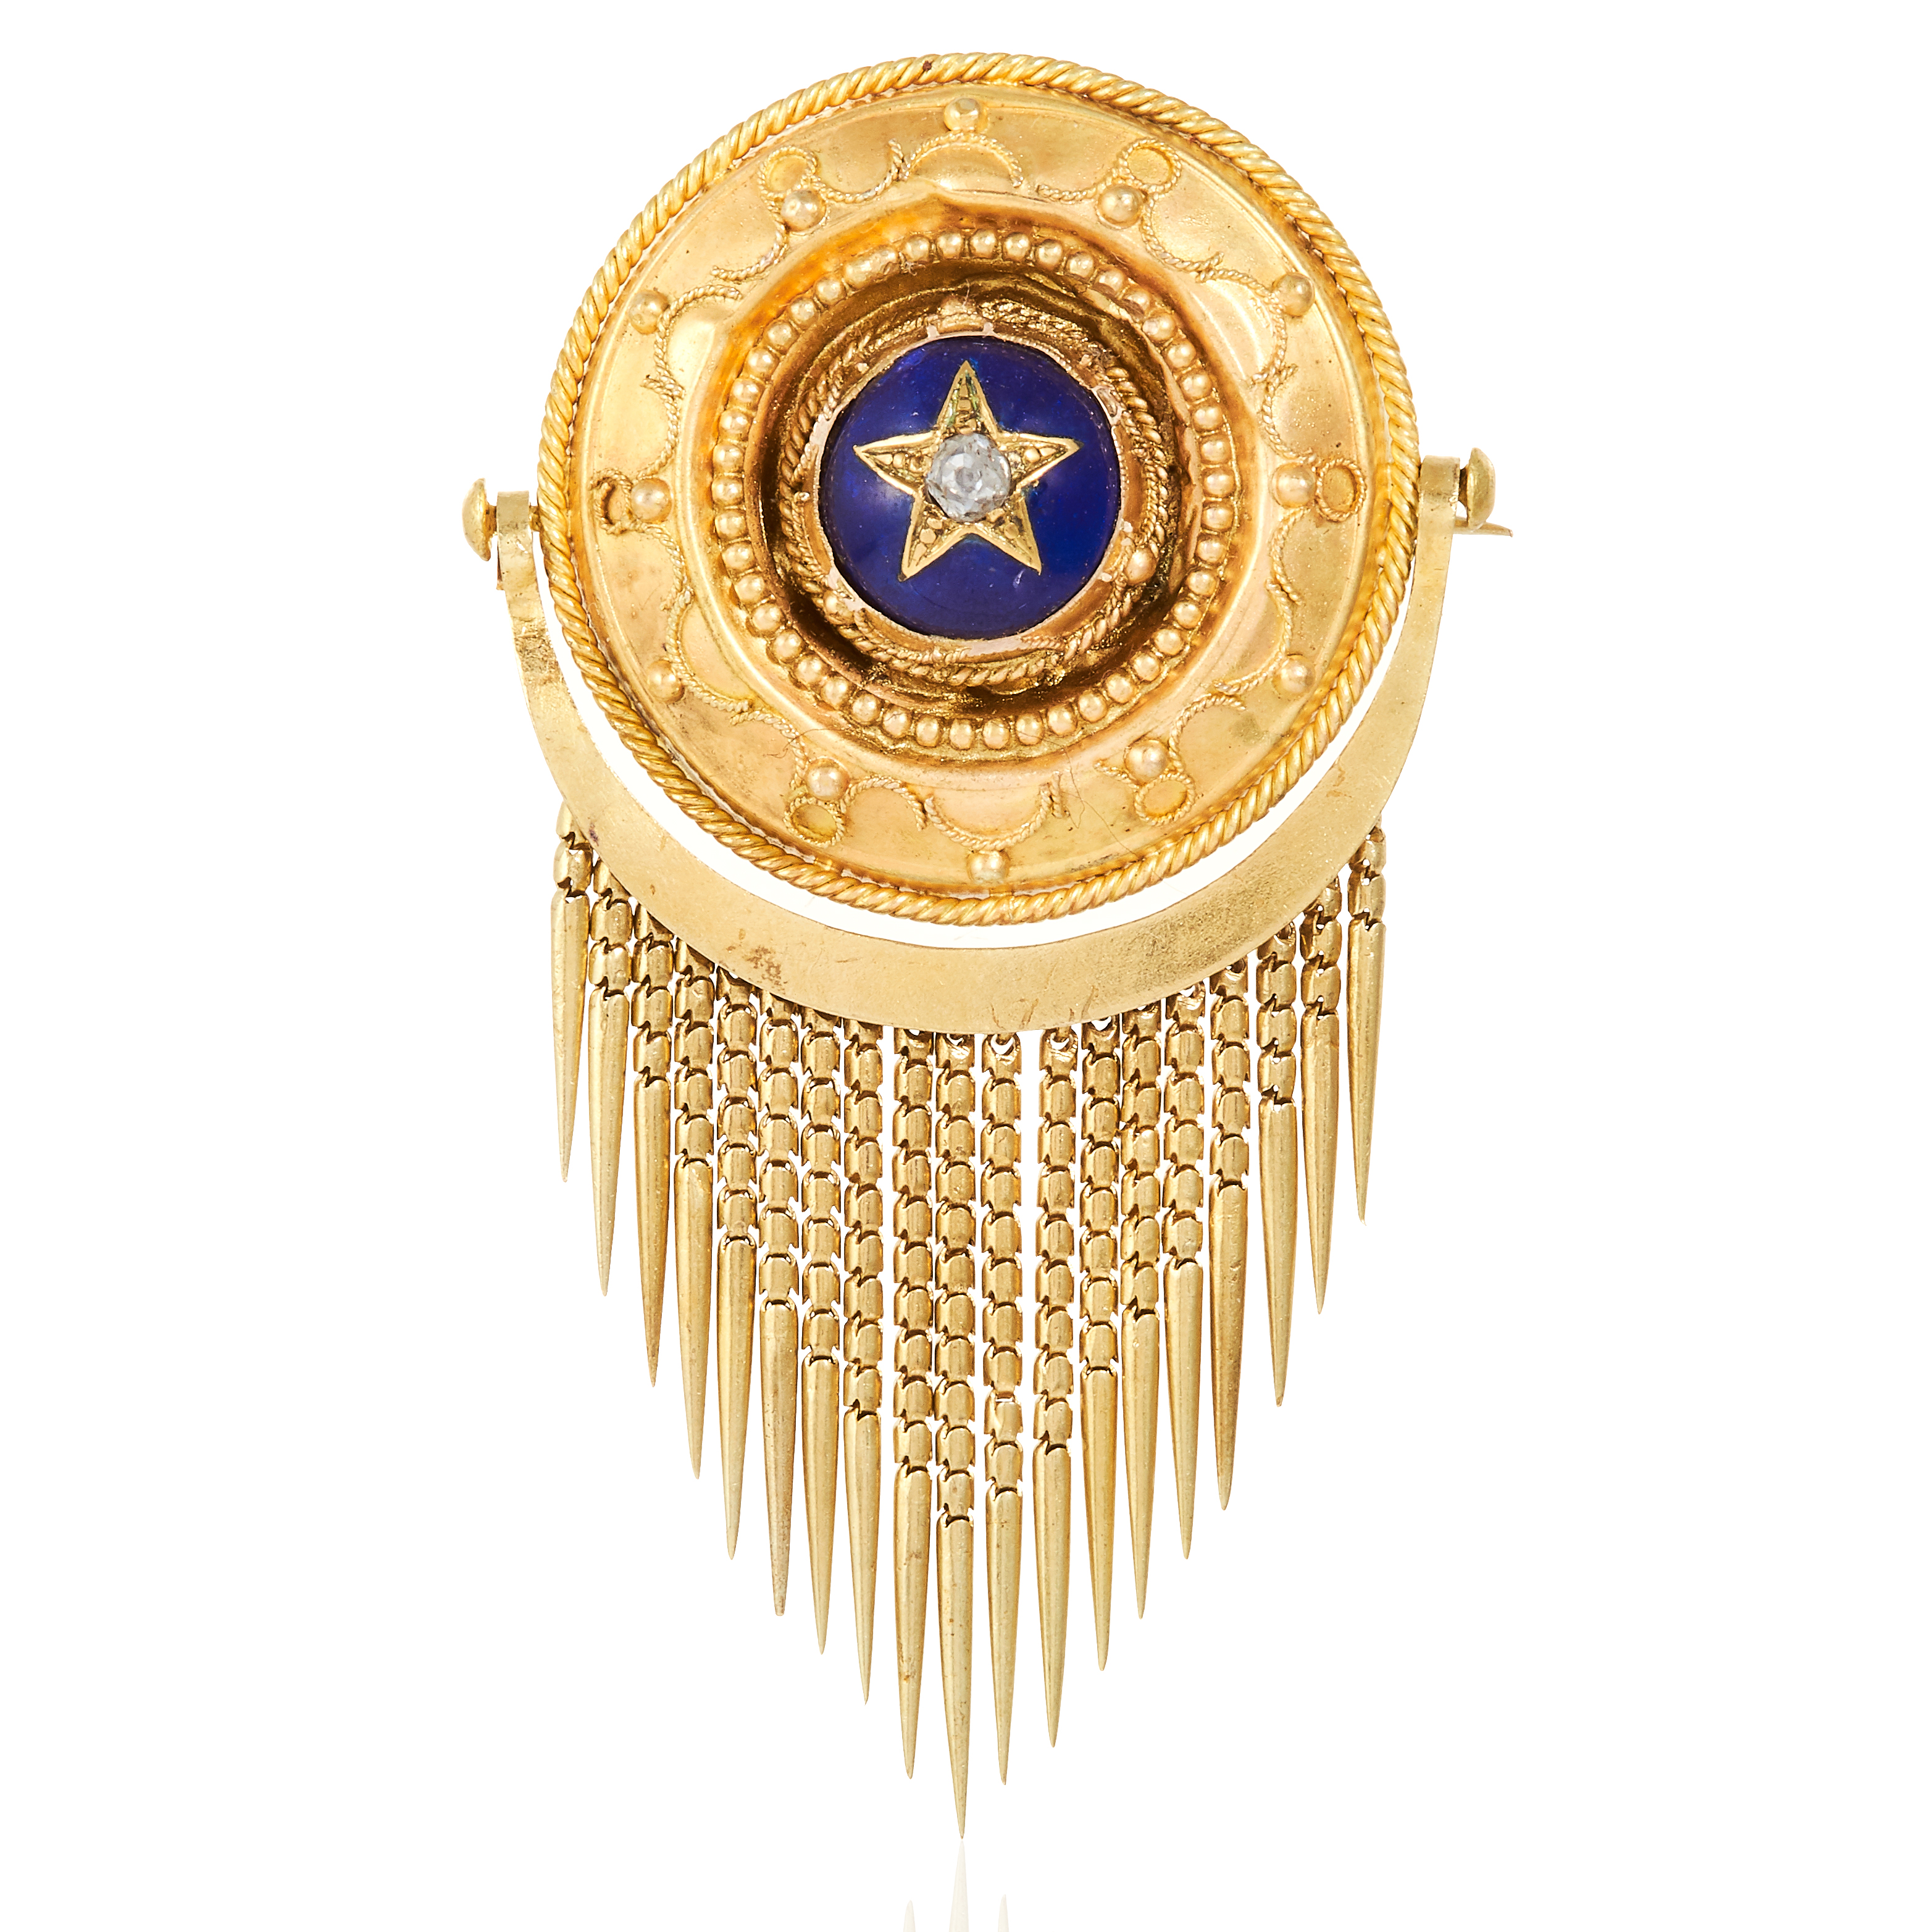 A DIAMOND AND ENAMEL MOURNING BROOCH in high carat yellow gold, the large circular body set with